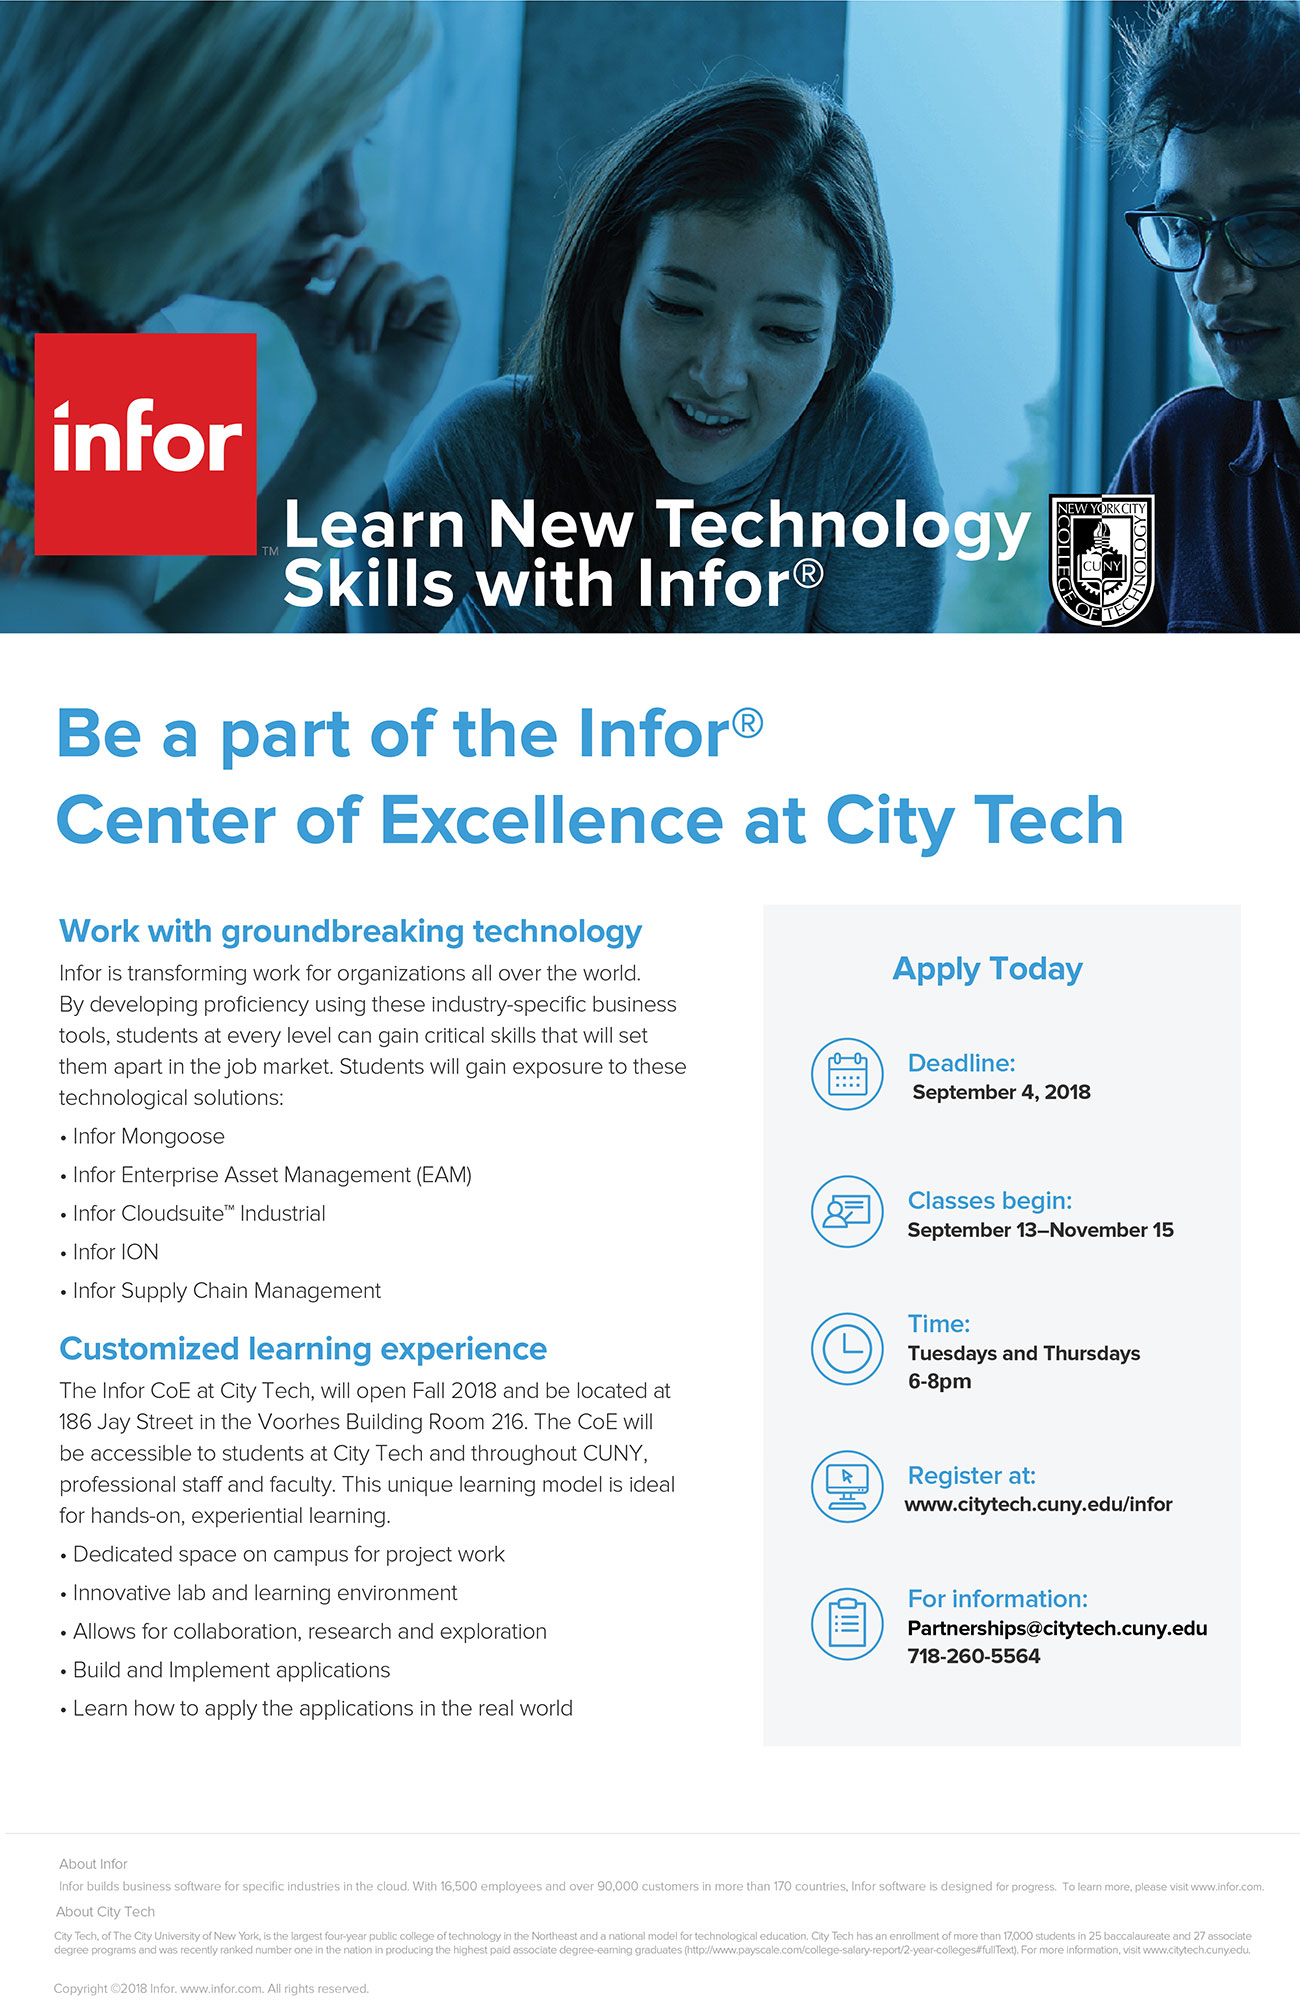 Free Infor TRaining at City Tech